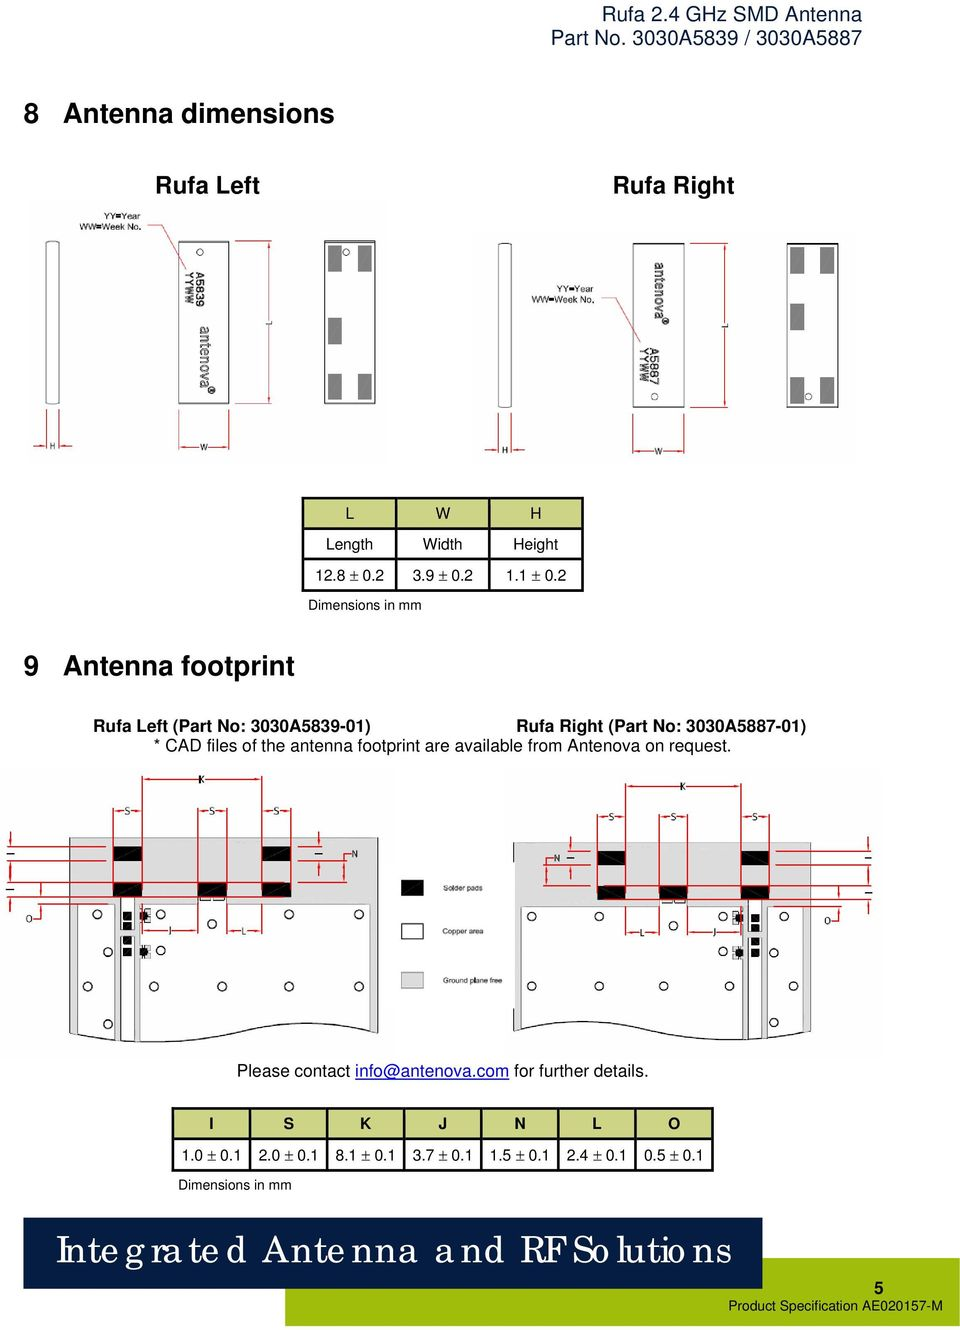 CAD files of the antenna footprint are available from Antenova on request. Please contact info@antenova.